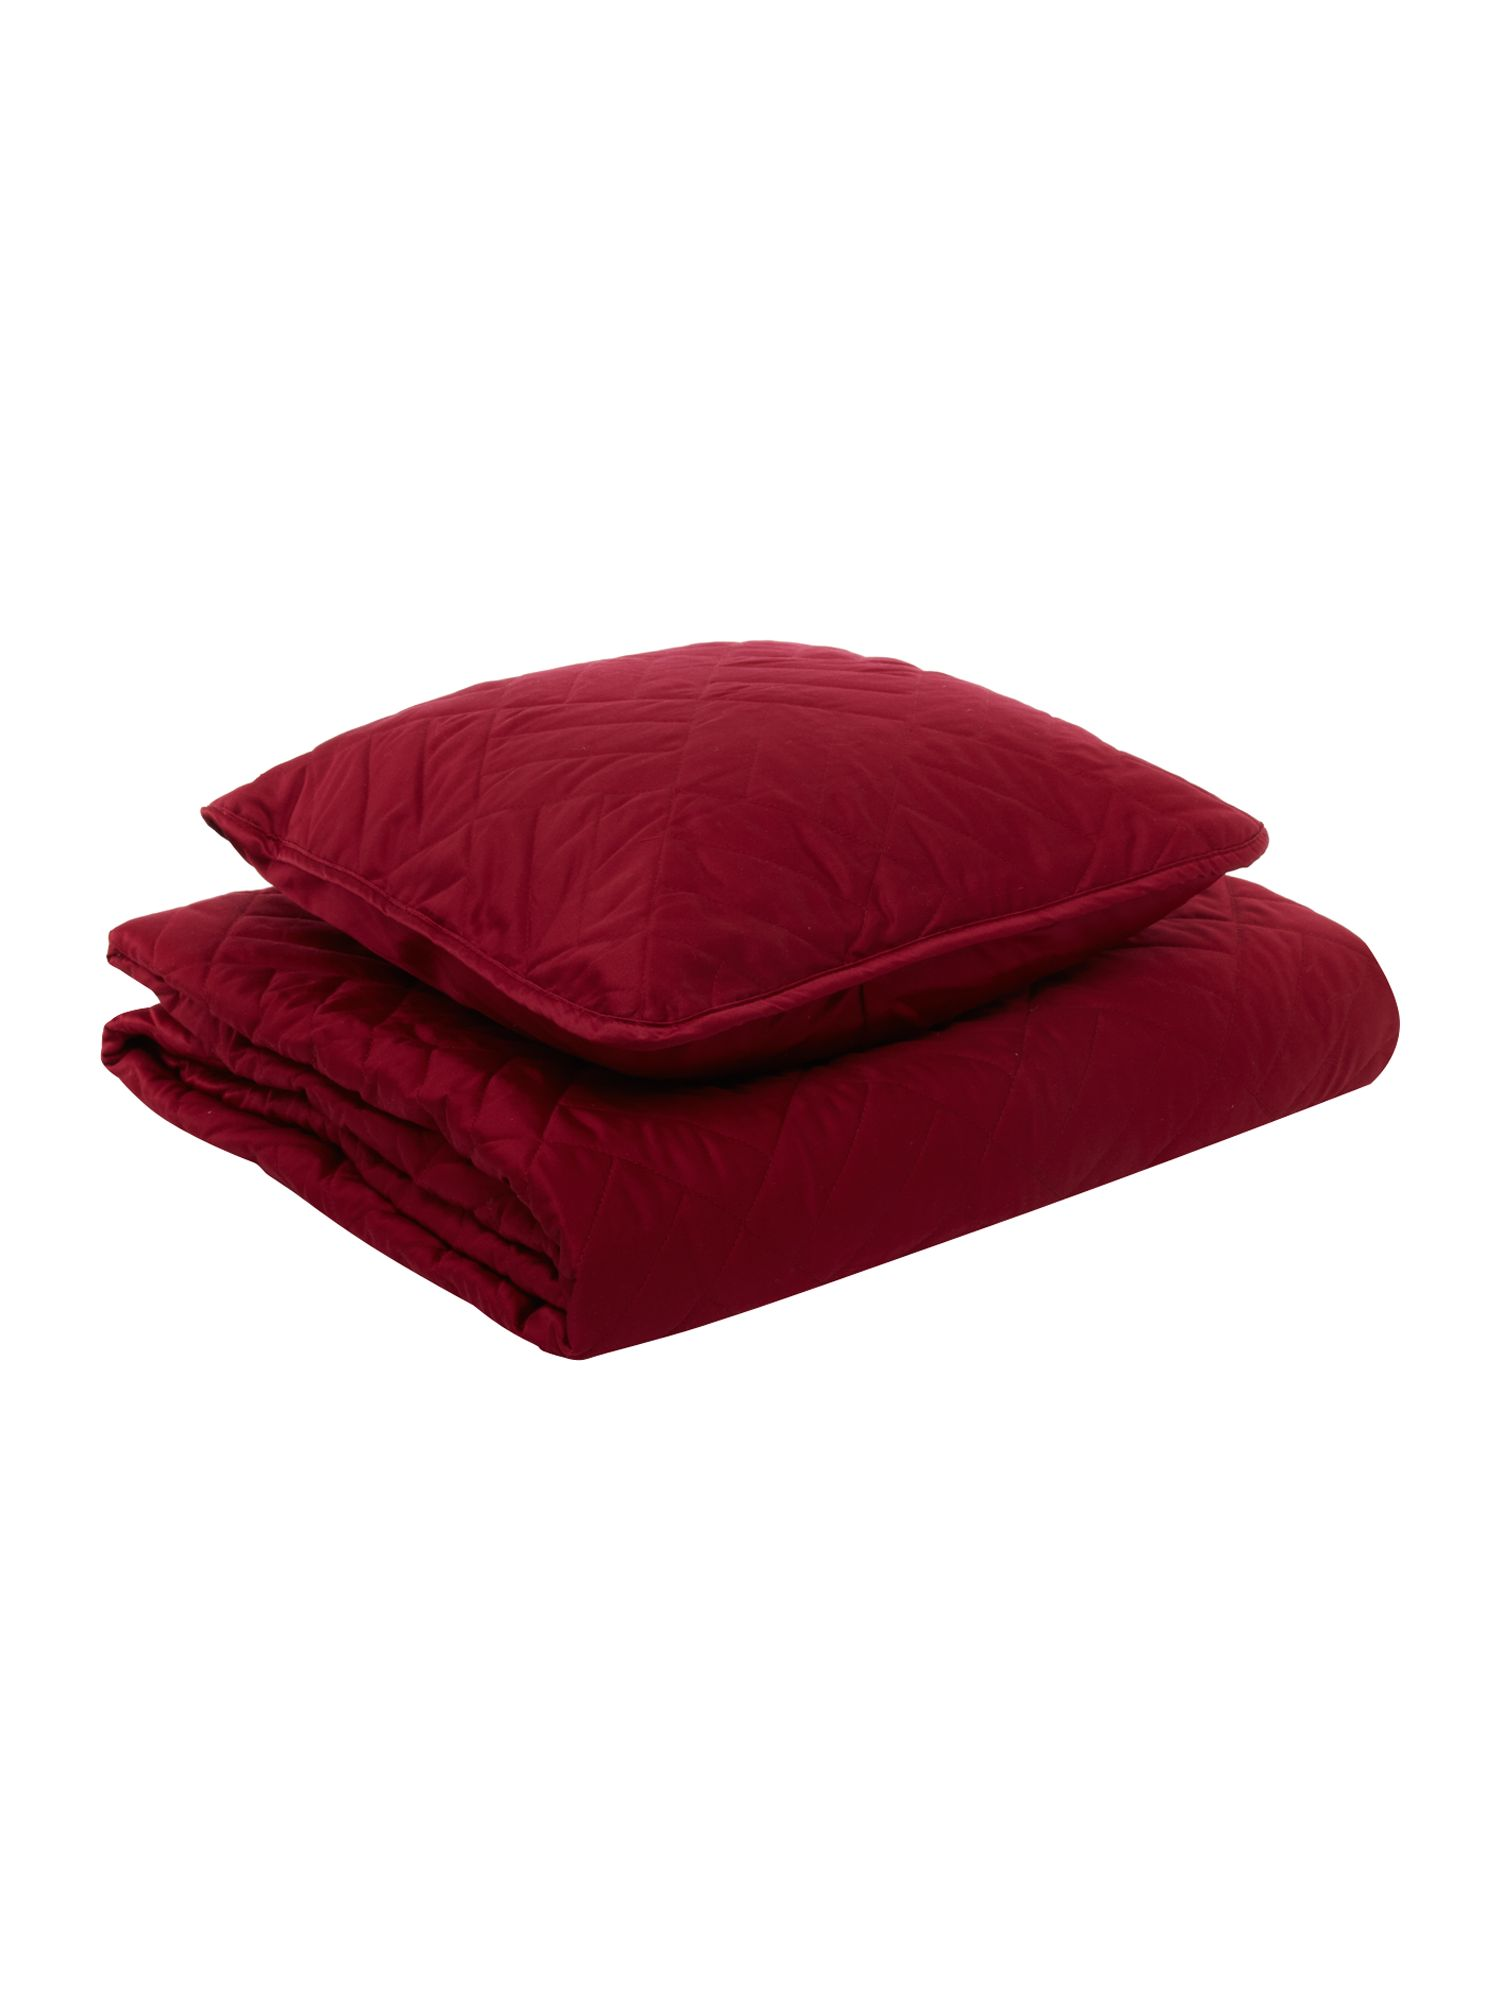 Bedcover and cushion in cherry